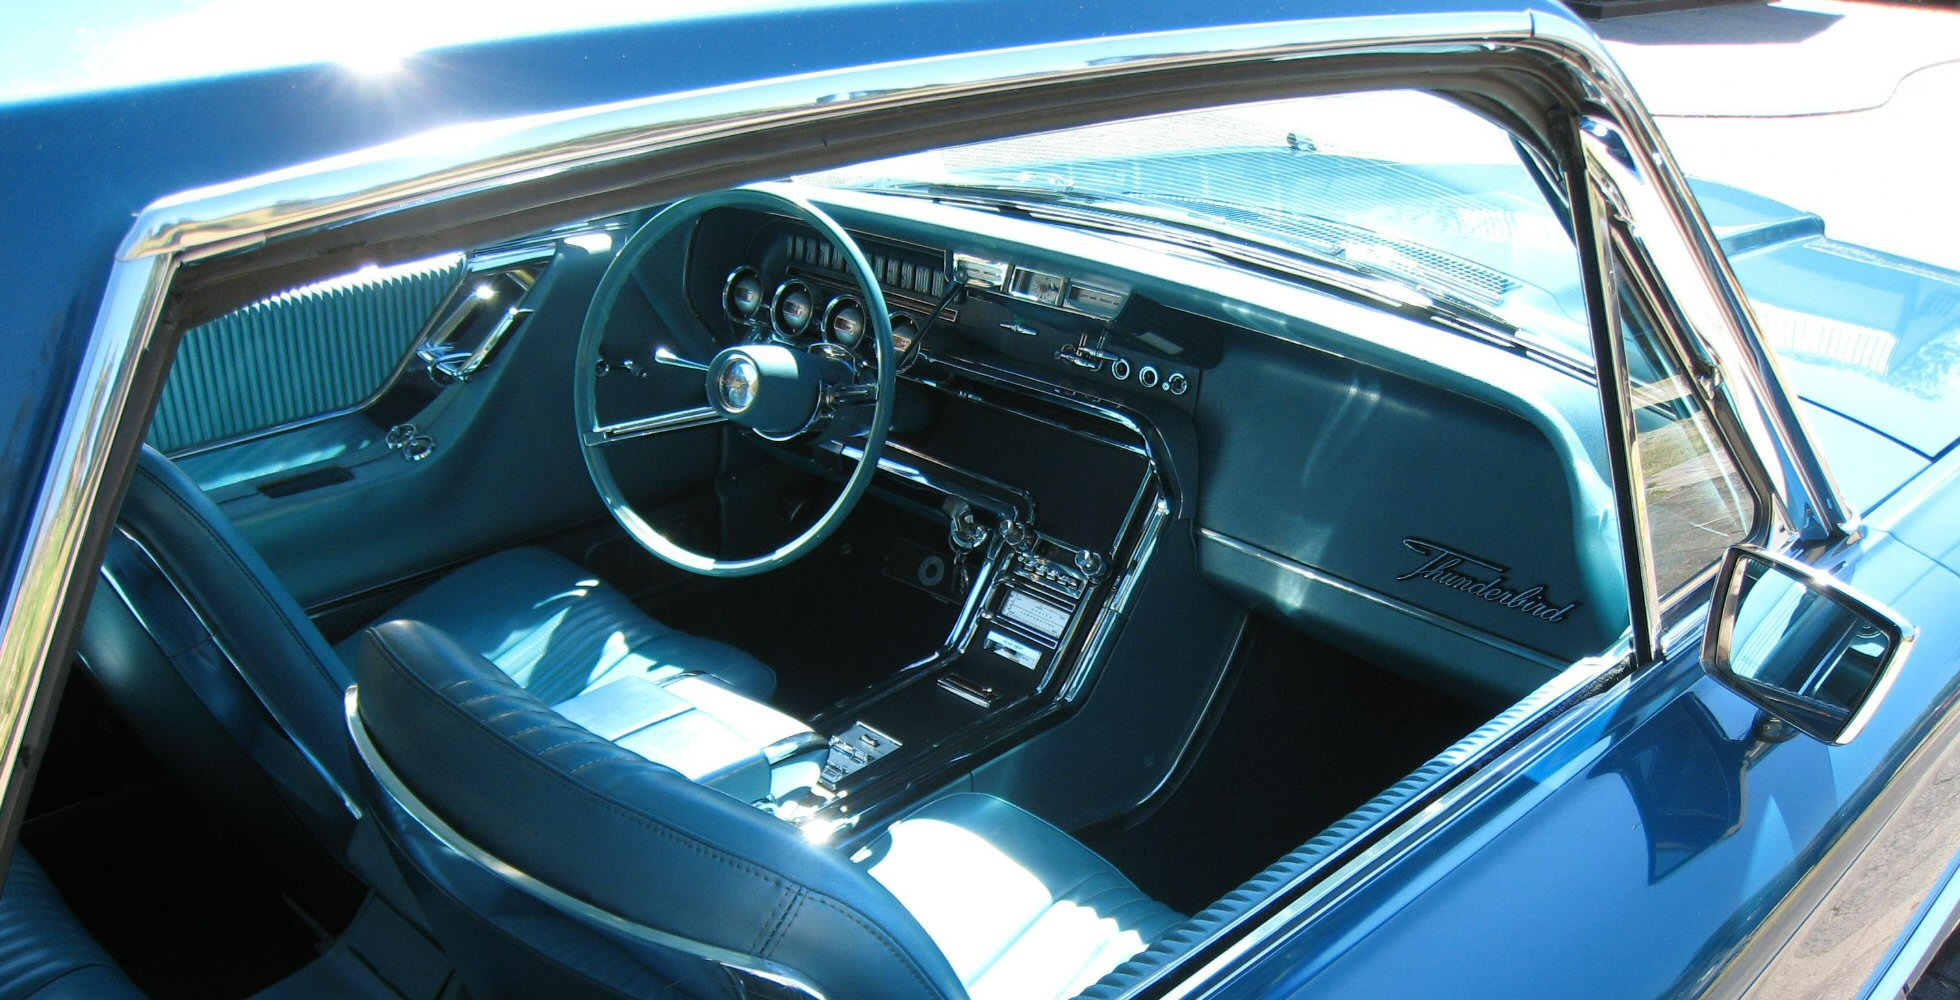 1965 Ford Thunderbird Phoenix Audio Demo Car (2).jpg